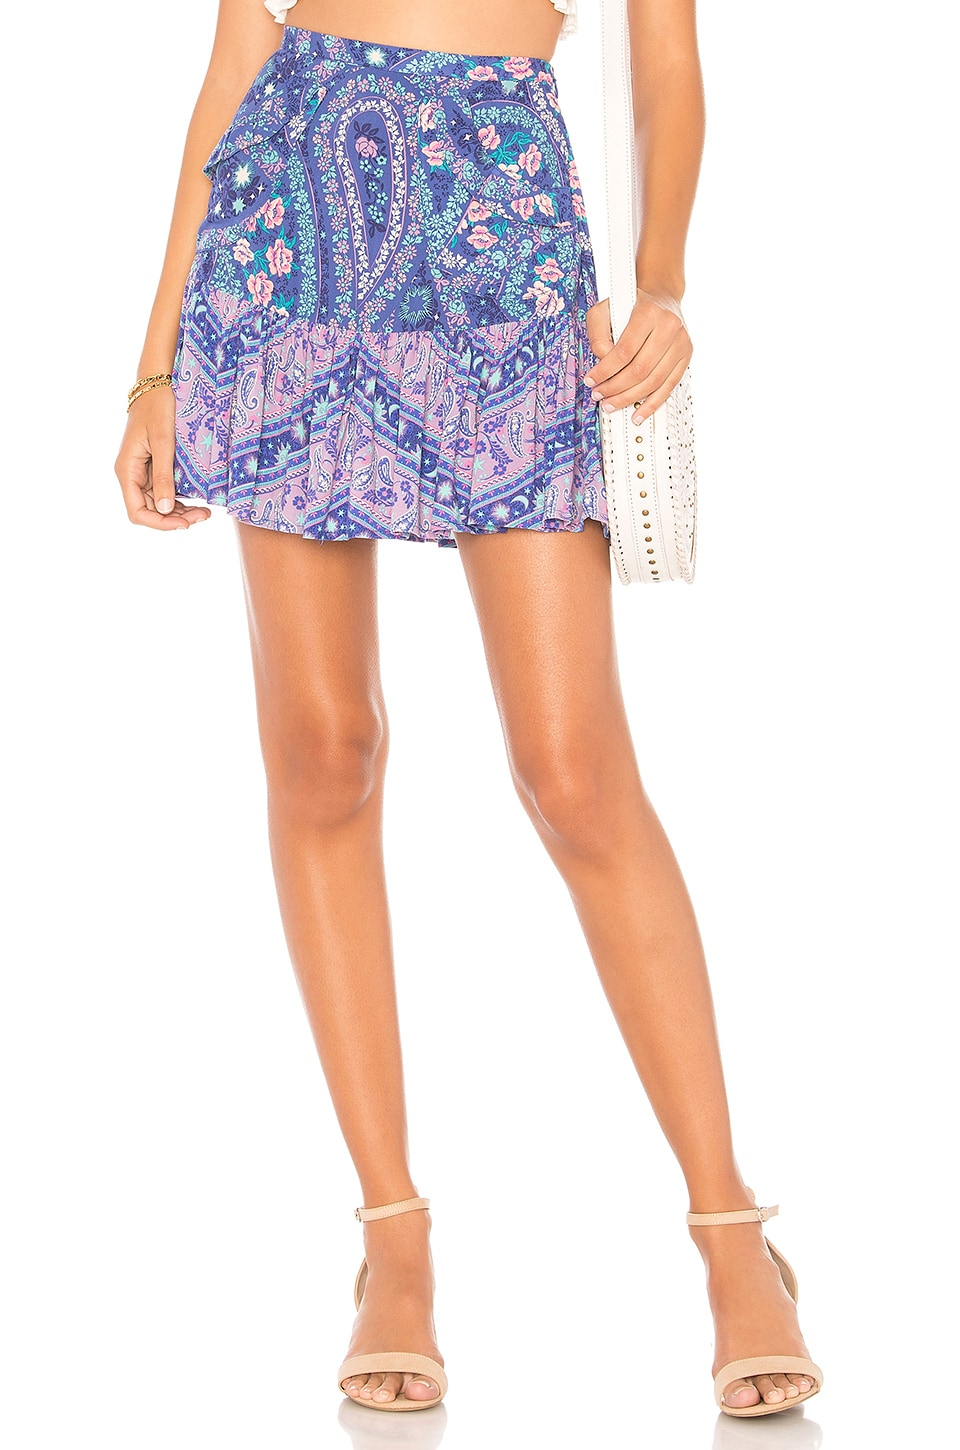 Spell & The Gypsy Collective City Lights Mini Skirt in Indigo